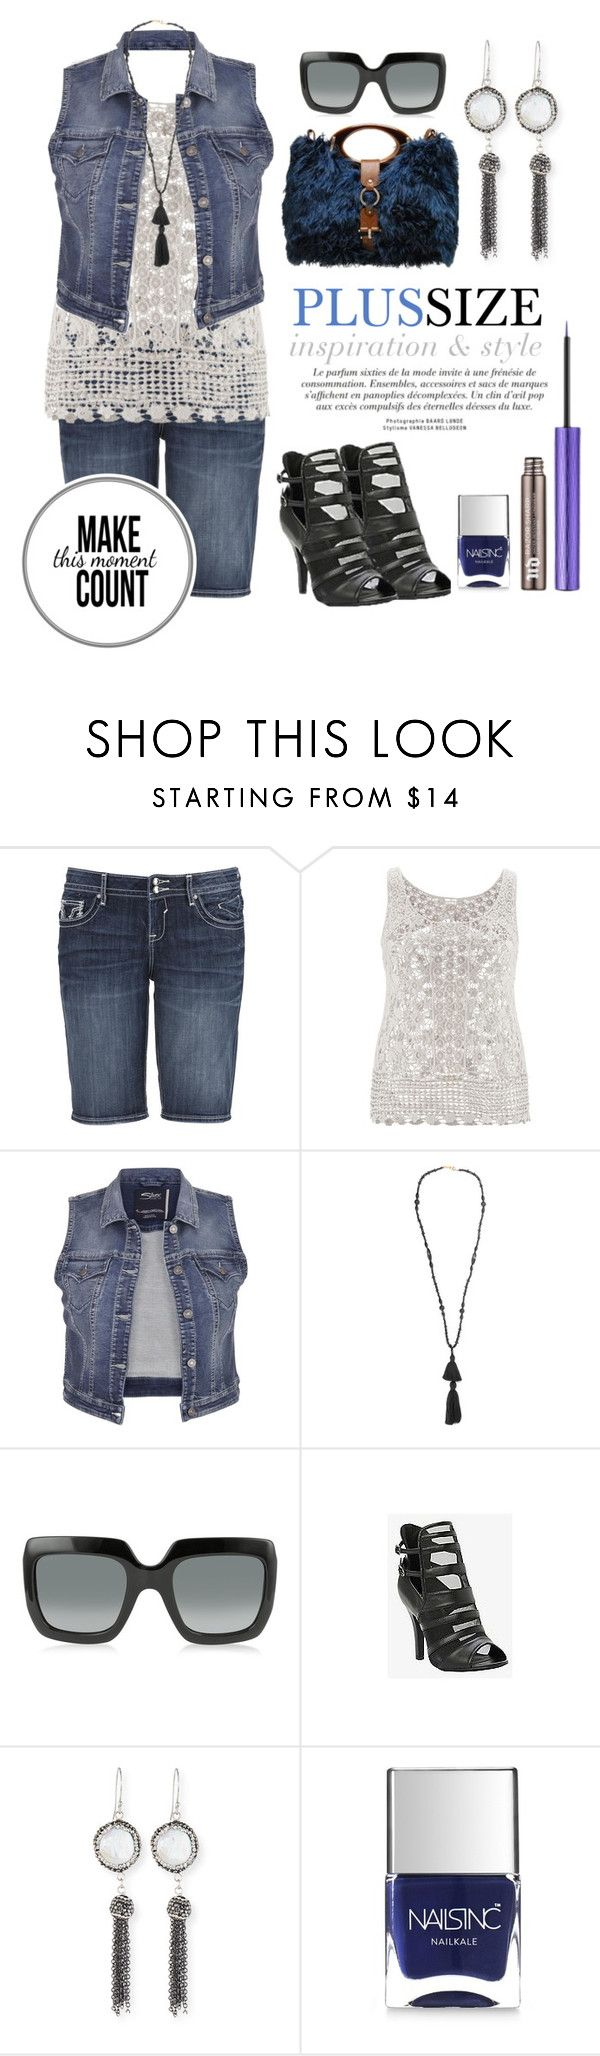 """Plus Size Amazing"" by kimberlyn303 on Polyvore featuring maurices, Isabel Marant, Gucci, Marni, Torrid, Elise M., Nails Inc. and Urban Decay"